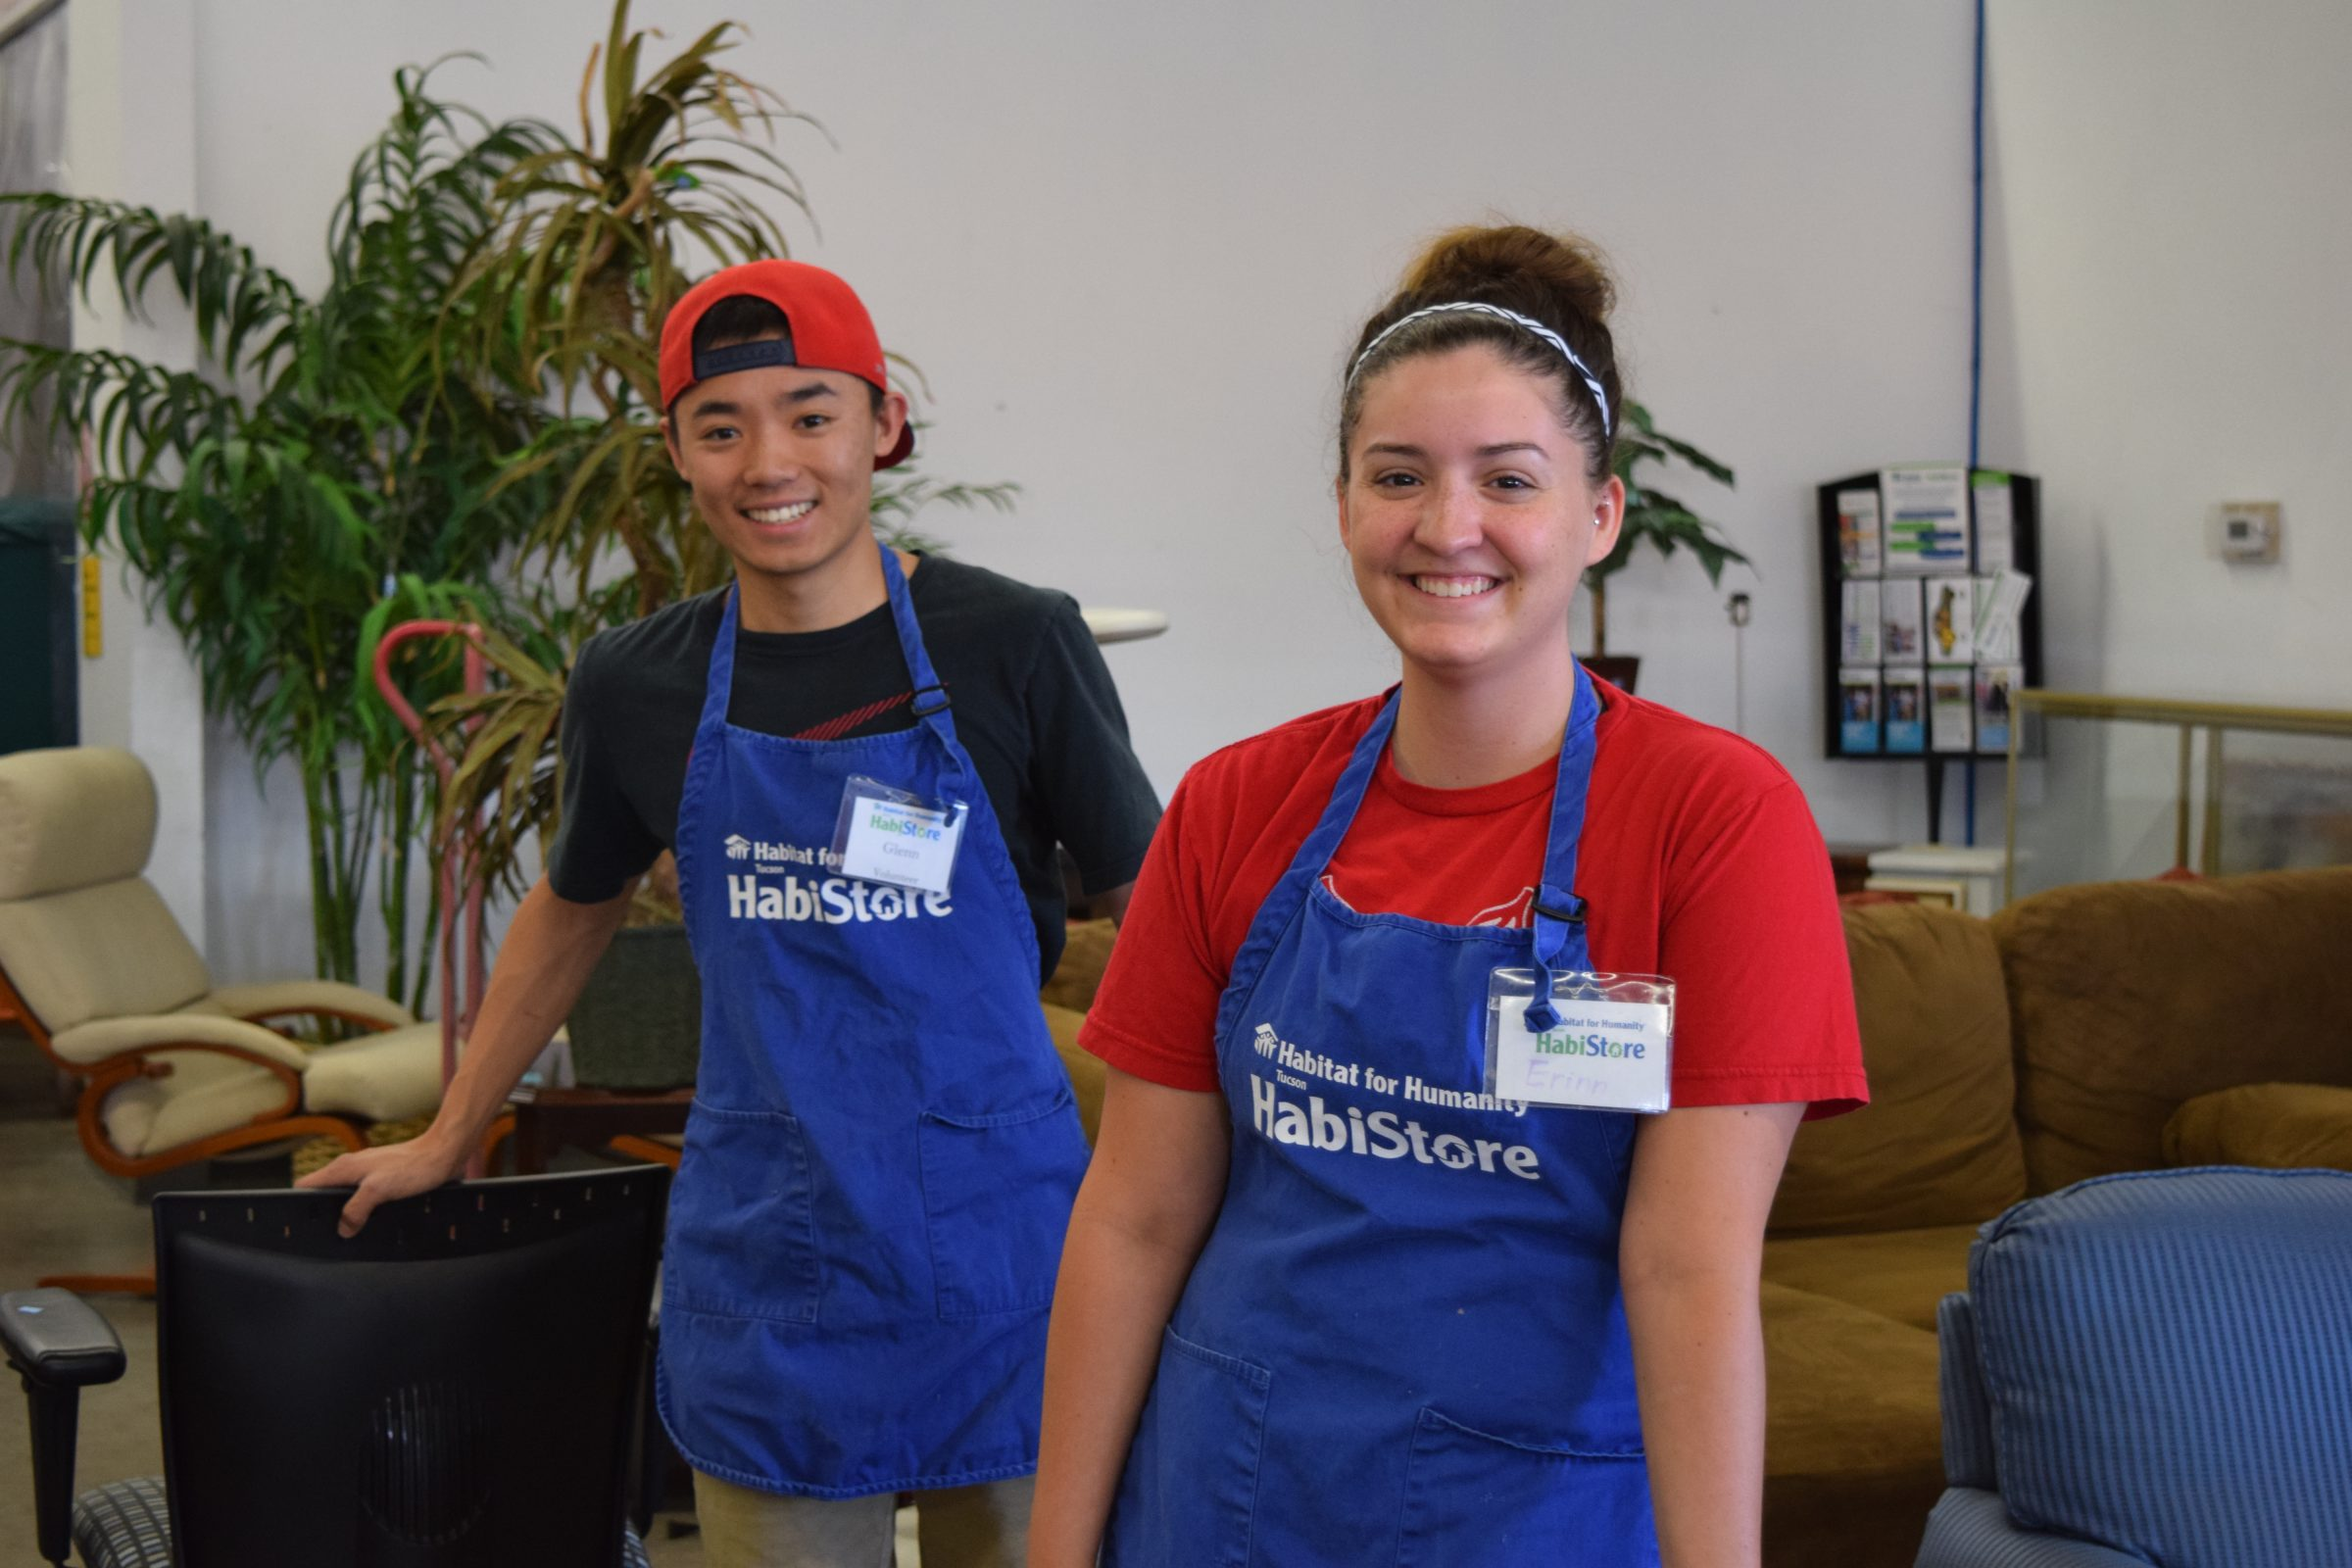 Volunteers at the Tucson HabiStore have fun while learning gaining valuable work experience